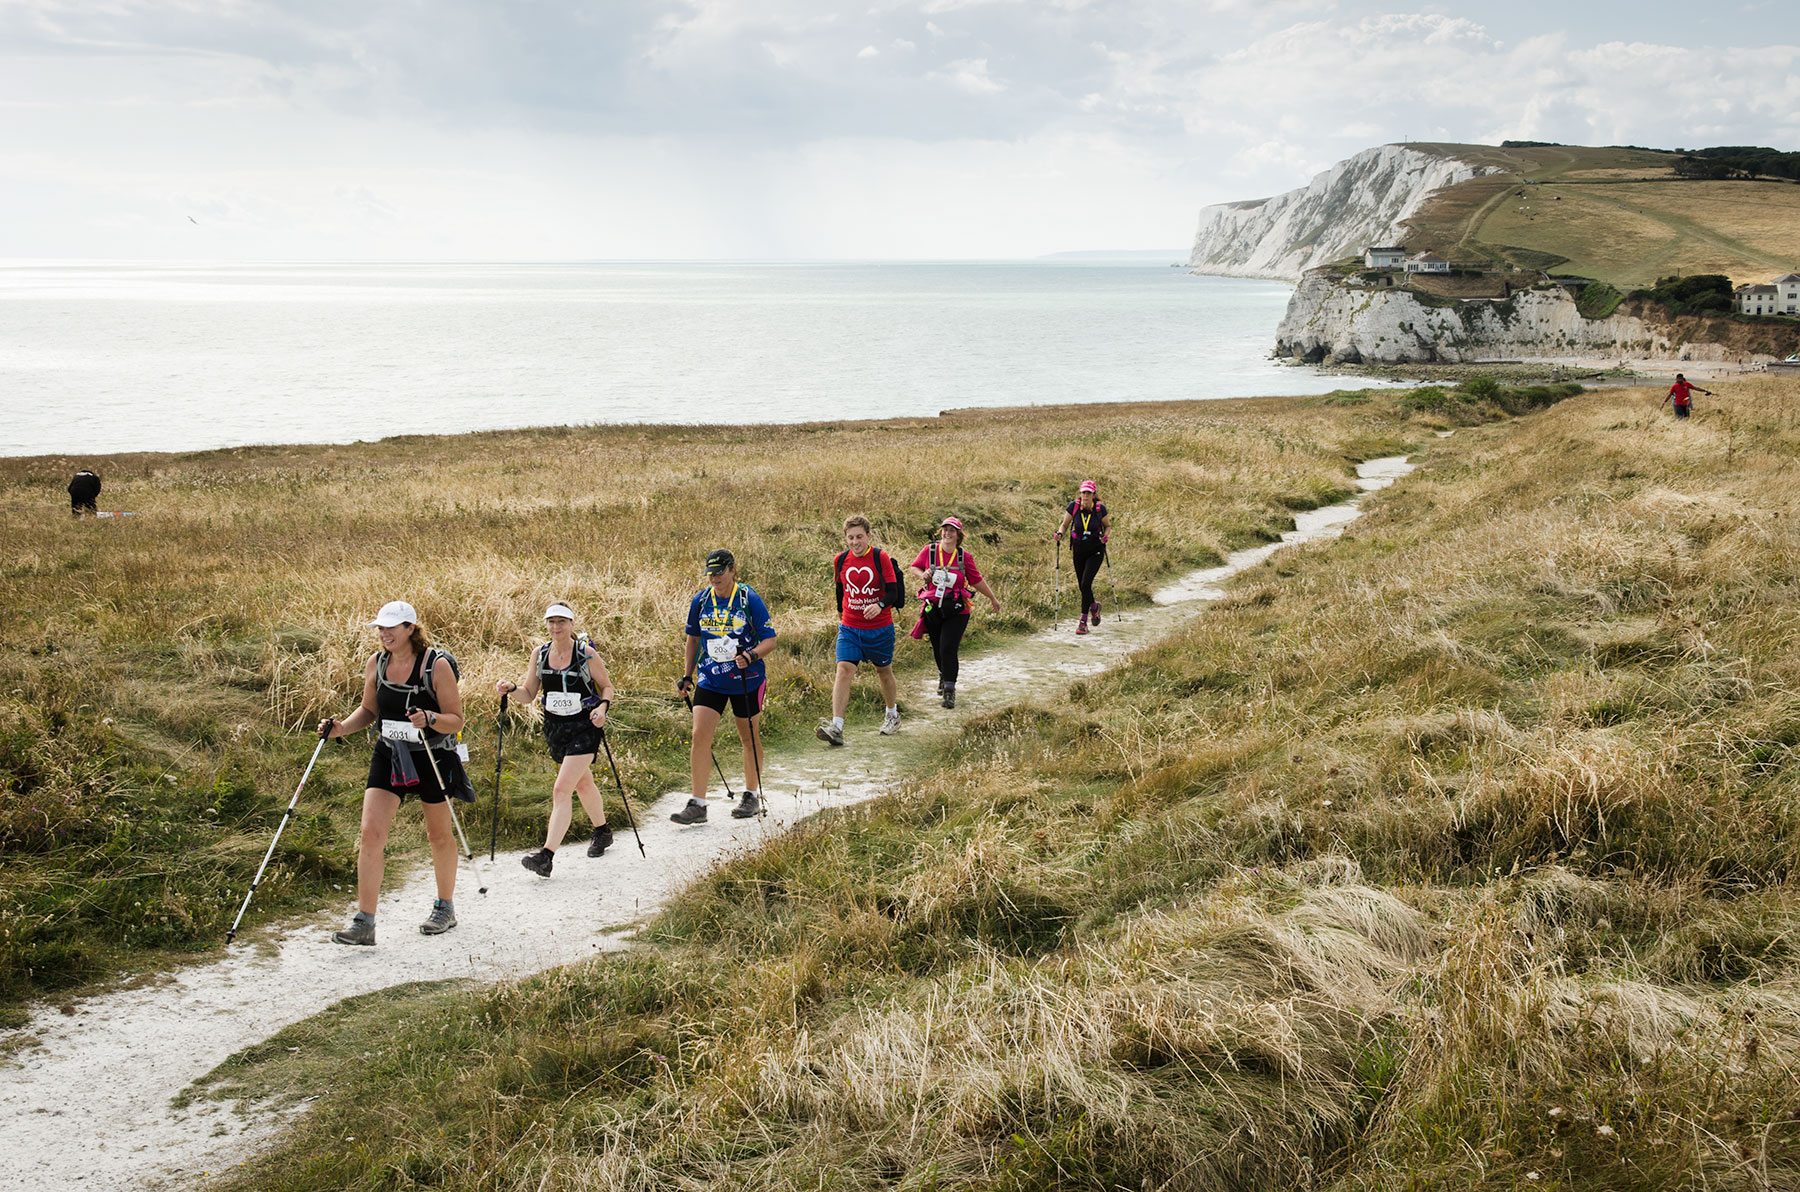 30km into the Isle of Wight Challenge